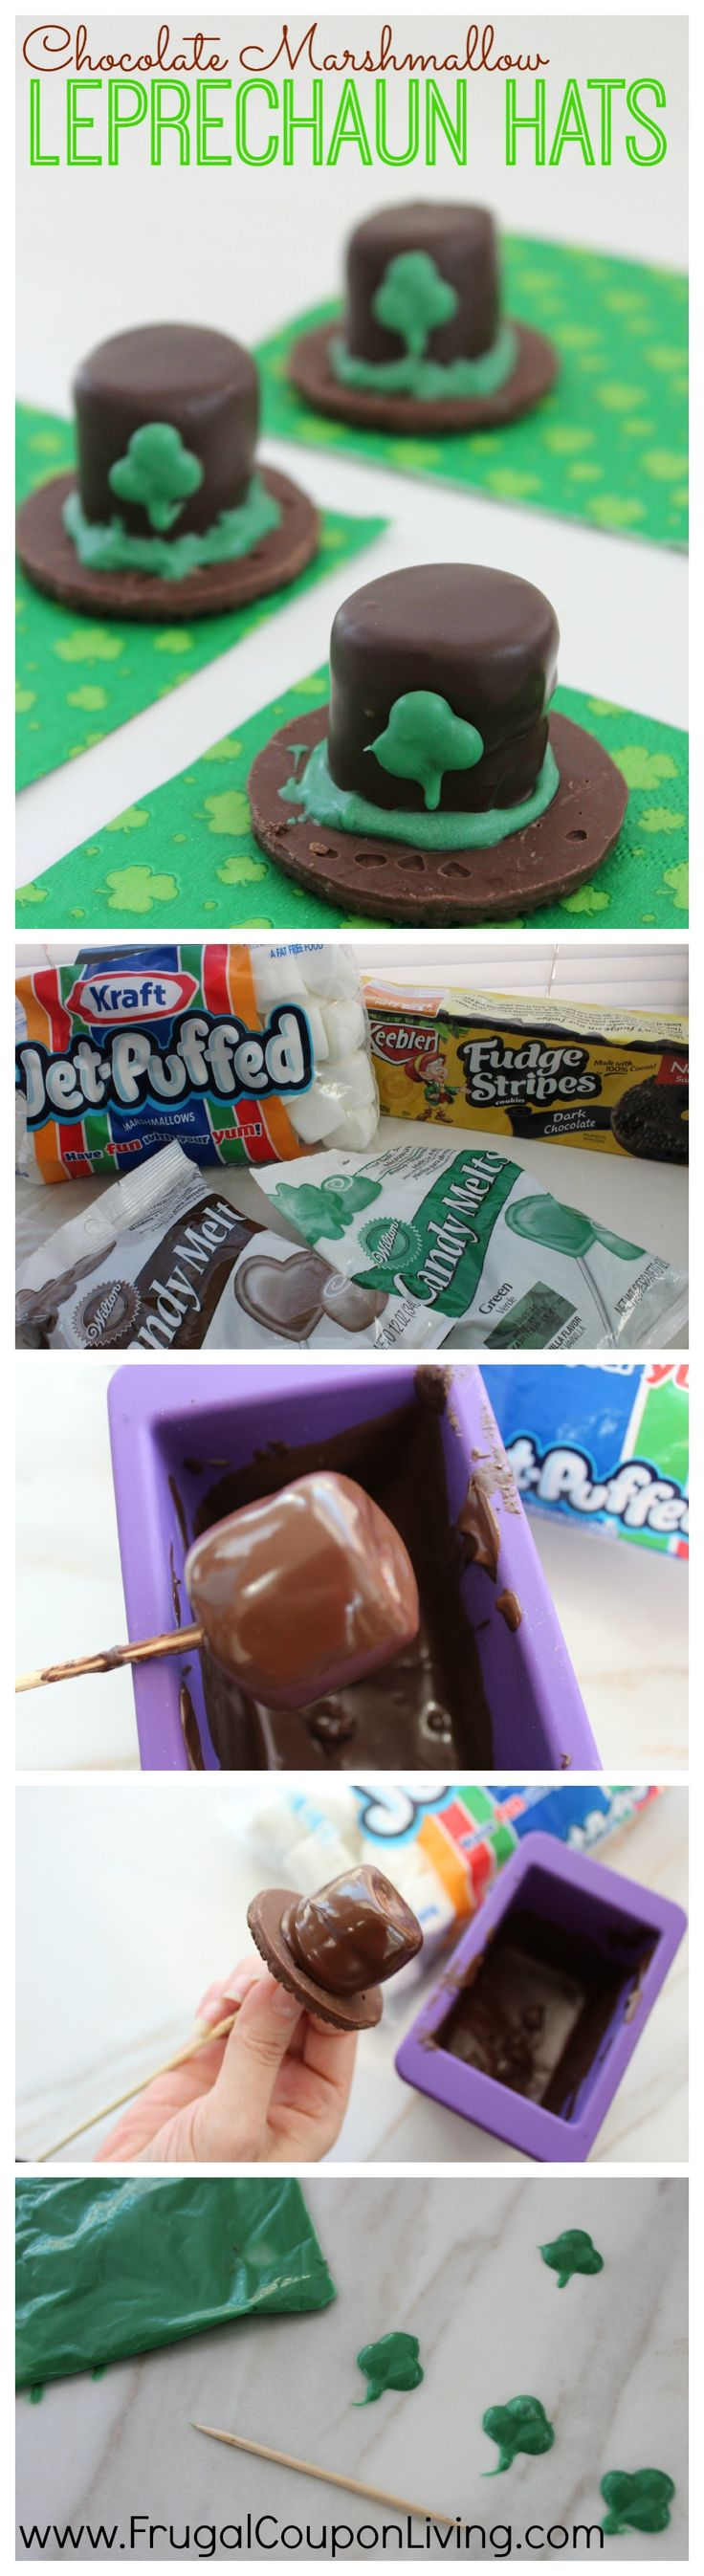 St Patricks Day Chocolate Marshmallow Leprechaun Hats Recipe Looks Simple Cute Idea